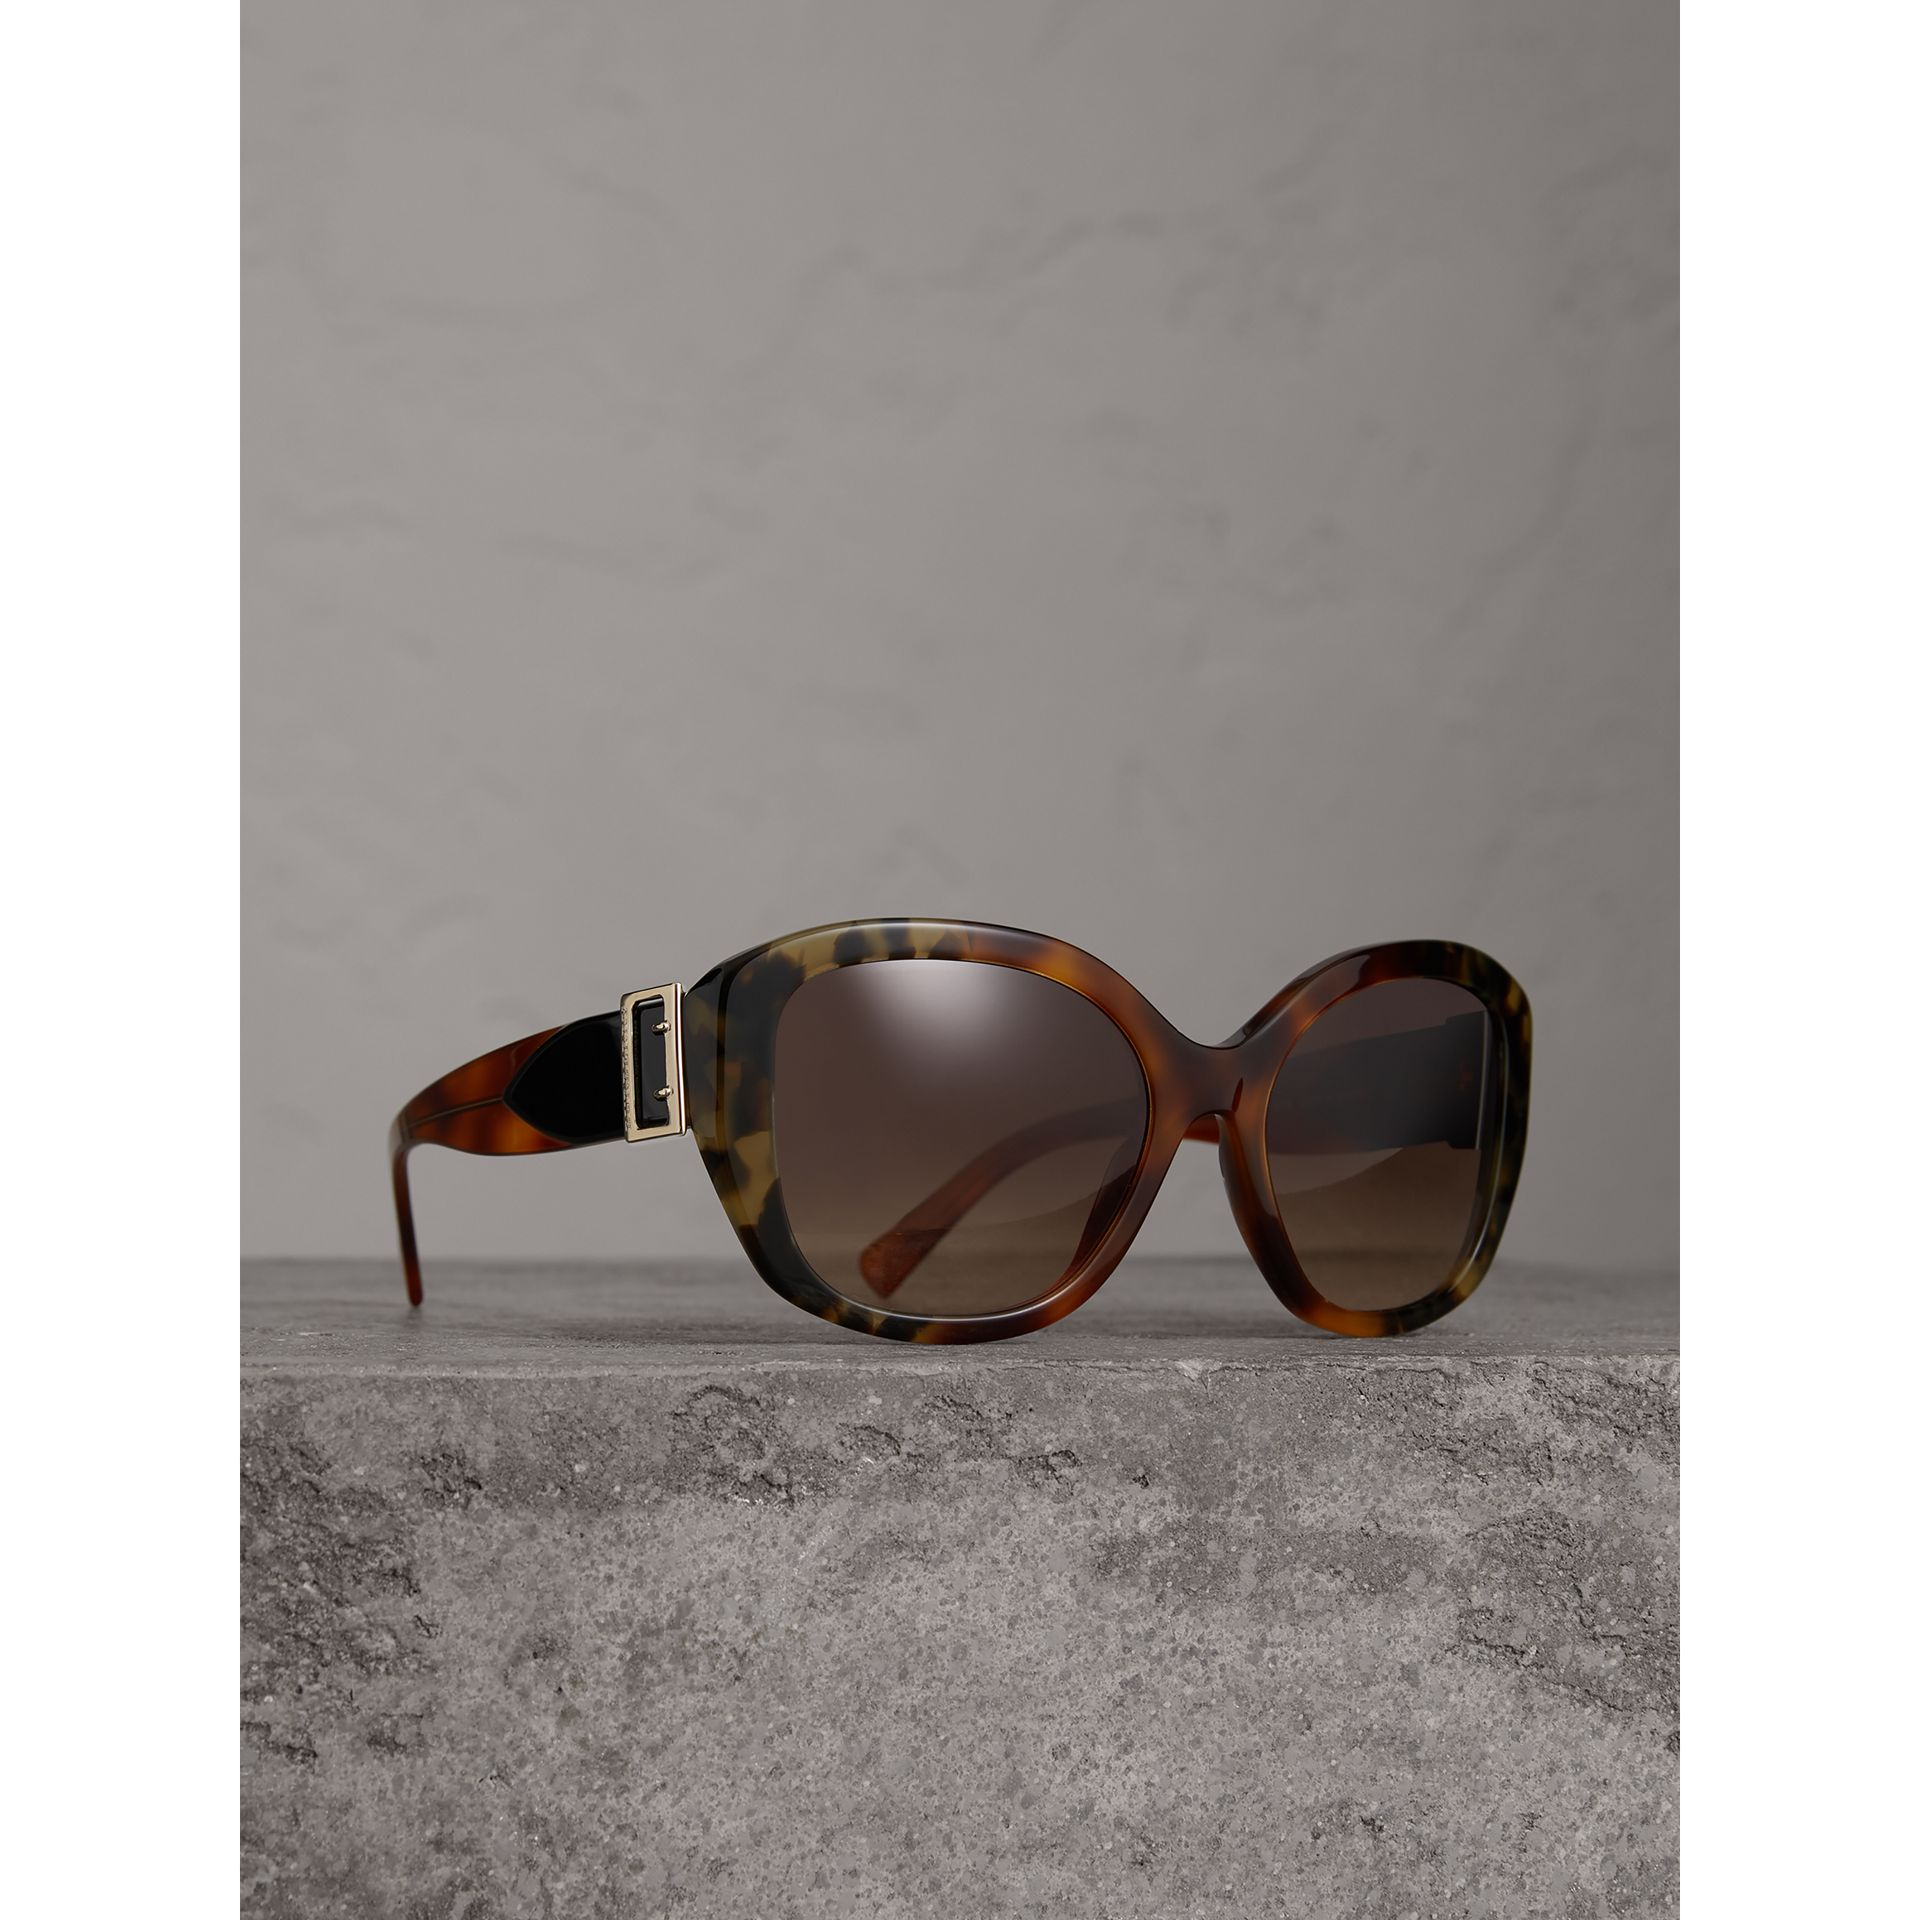 Buckle Detail Oversize Square Frame Sunglasses in Dark Ochre - Women | Burberry Australia - gallery image 0